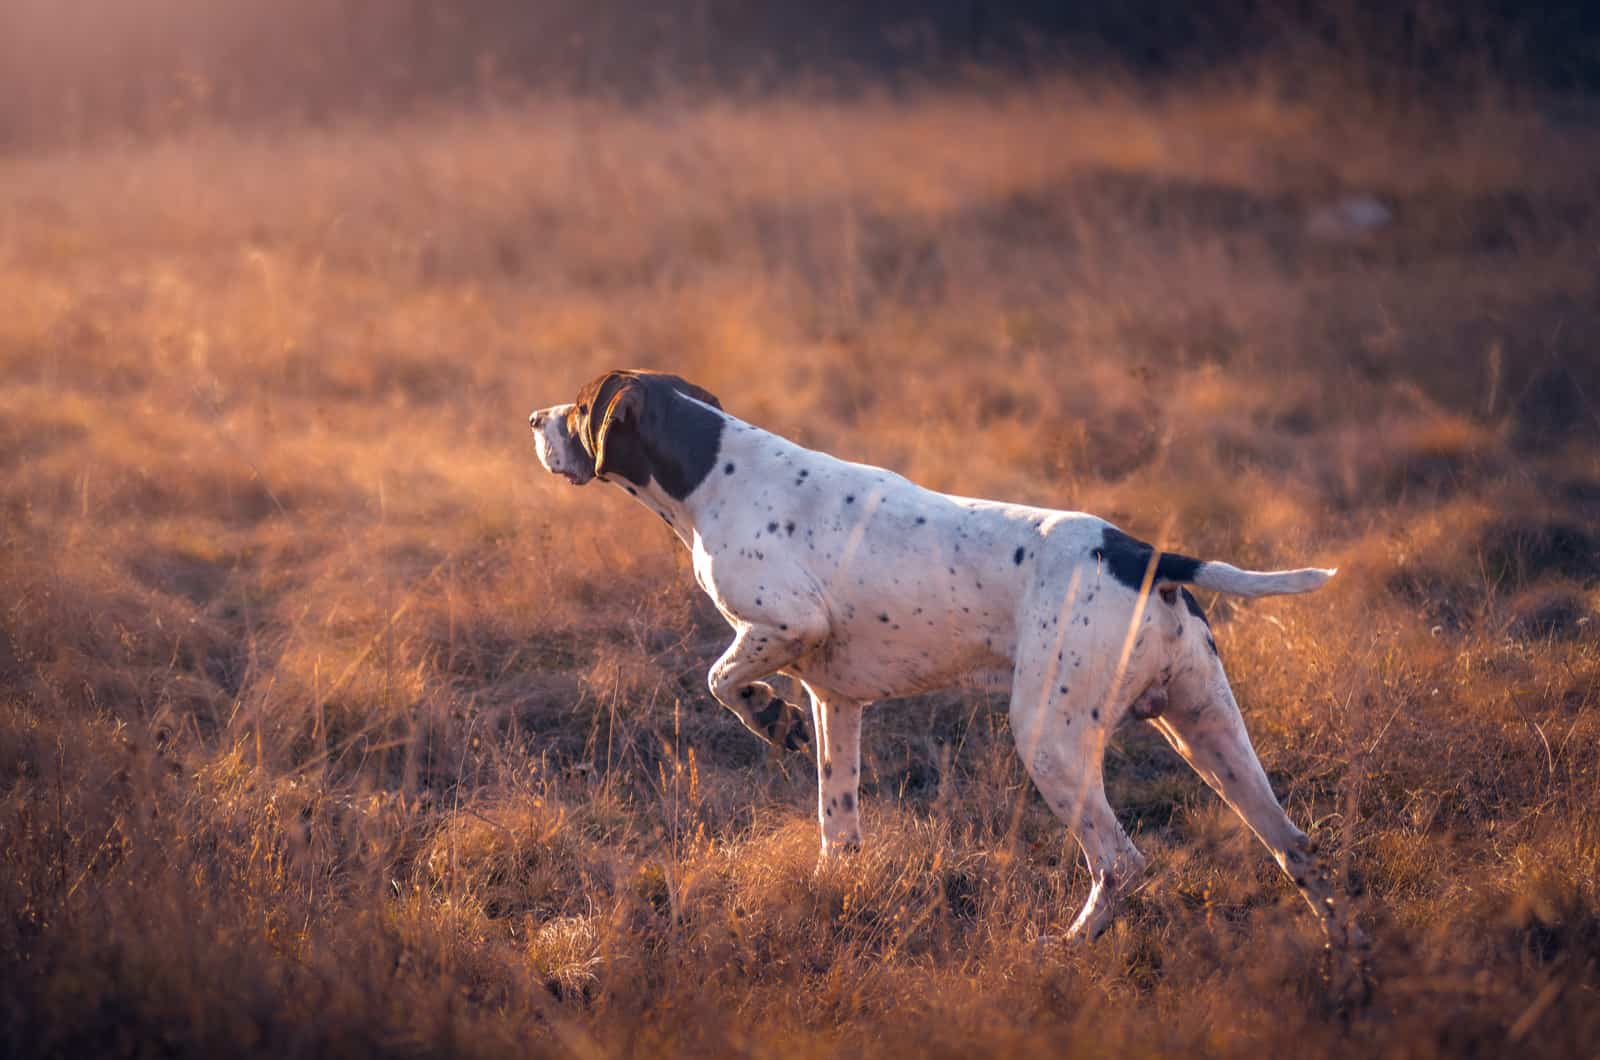 hunting pointer dog in a field